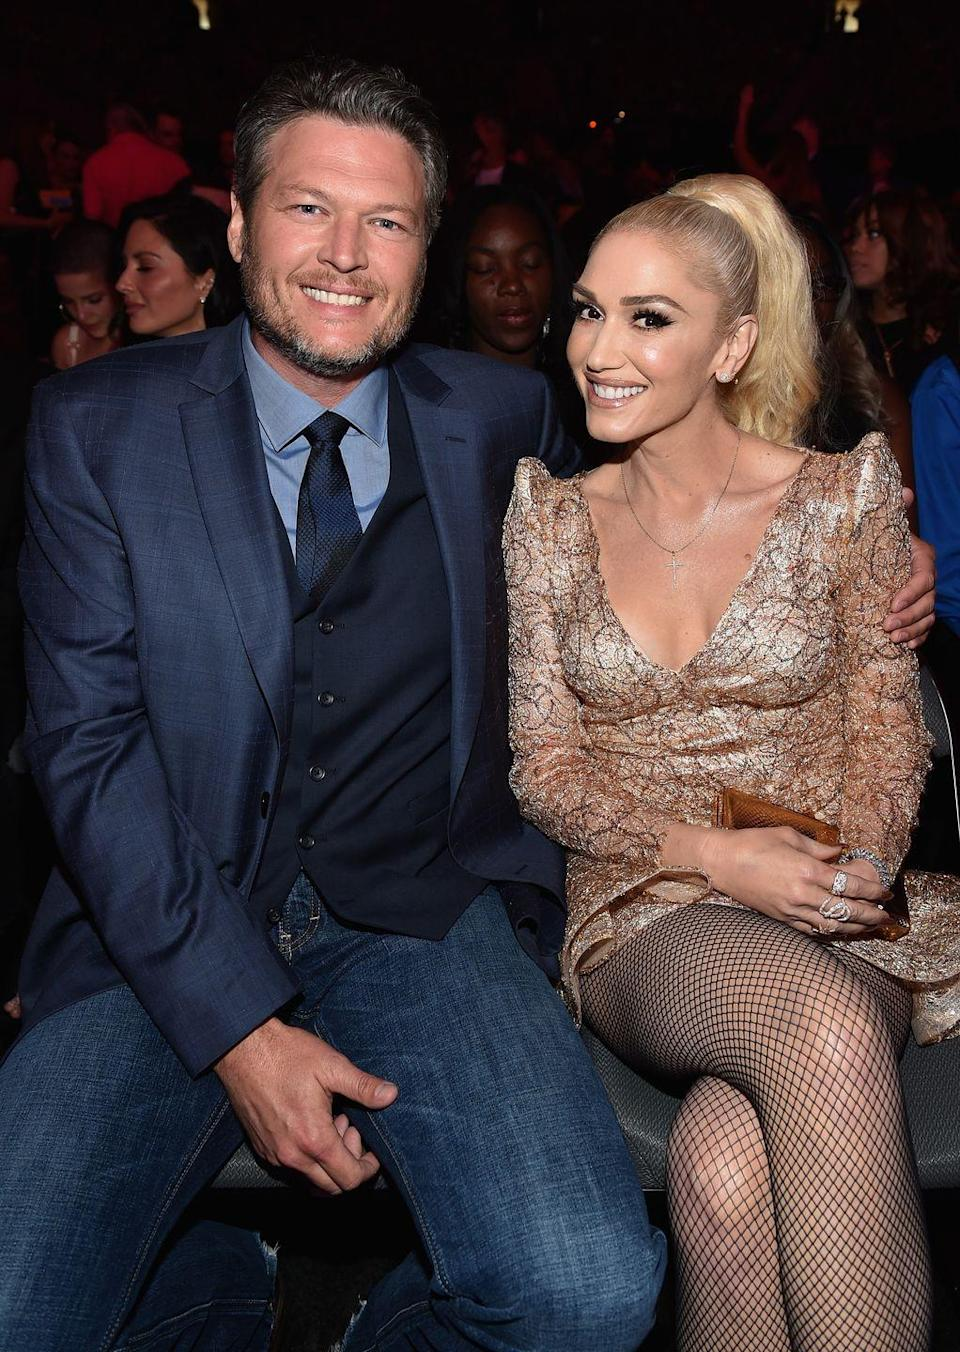 """<p>Tony Kanal isn't the only <a href=""""https://www.goodhousekeeping.com/life/entertainment/a31078748/blake-shelton-gwen-stefani-married/"""" rel=""""nofollow noopener"""" target=""""_blank"""" data-ylk=""""slk:guy Gwen's written songs about"""" class=""""link rapid-noclick-resp"""">guy Gwen's written songs about</a>. There was plenty of speculation that her 2016 song """"Make Me Like You"""" was about <a href=""""https://www.goodhousekeeping.com/life/entertainment/a32292035/blake-shelton-gwen-stefani-nobody-but-you-reactions/"""" rel=""""nofollow noopener"""" target=""""_blank"""" data-ylk=""""slk:Blake Shelton"""" class=""""link rapid-noclick-resp"""">Blake Shelton</a>, thanks to lyrics like """"Why'd you have to go and make me like you?/ Yeah this is a feeling I'm not used to."""" She eventually confirmed it in <a href=""""https://www.cbsnews.com/news/gwen-stefani-says-make-me-like-you-is-about-blake-shelton/"""" rel=""""nofollow noopener"""" target=""""_blank"""" data-ylk=""""slk:an interview with Jimmy Kimmel"""" class=""""link rapid-noclick-resp"""">an interview with Jimmy Kimmel</a>. </p>"""